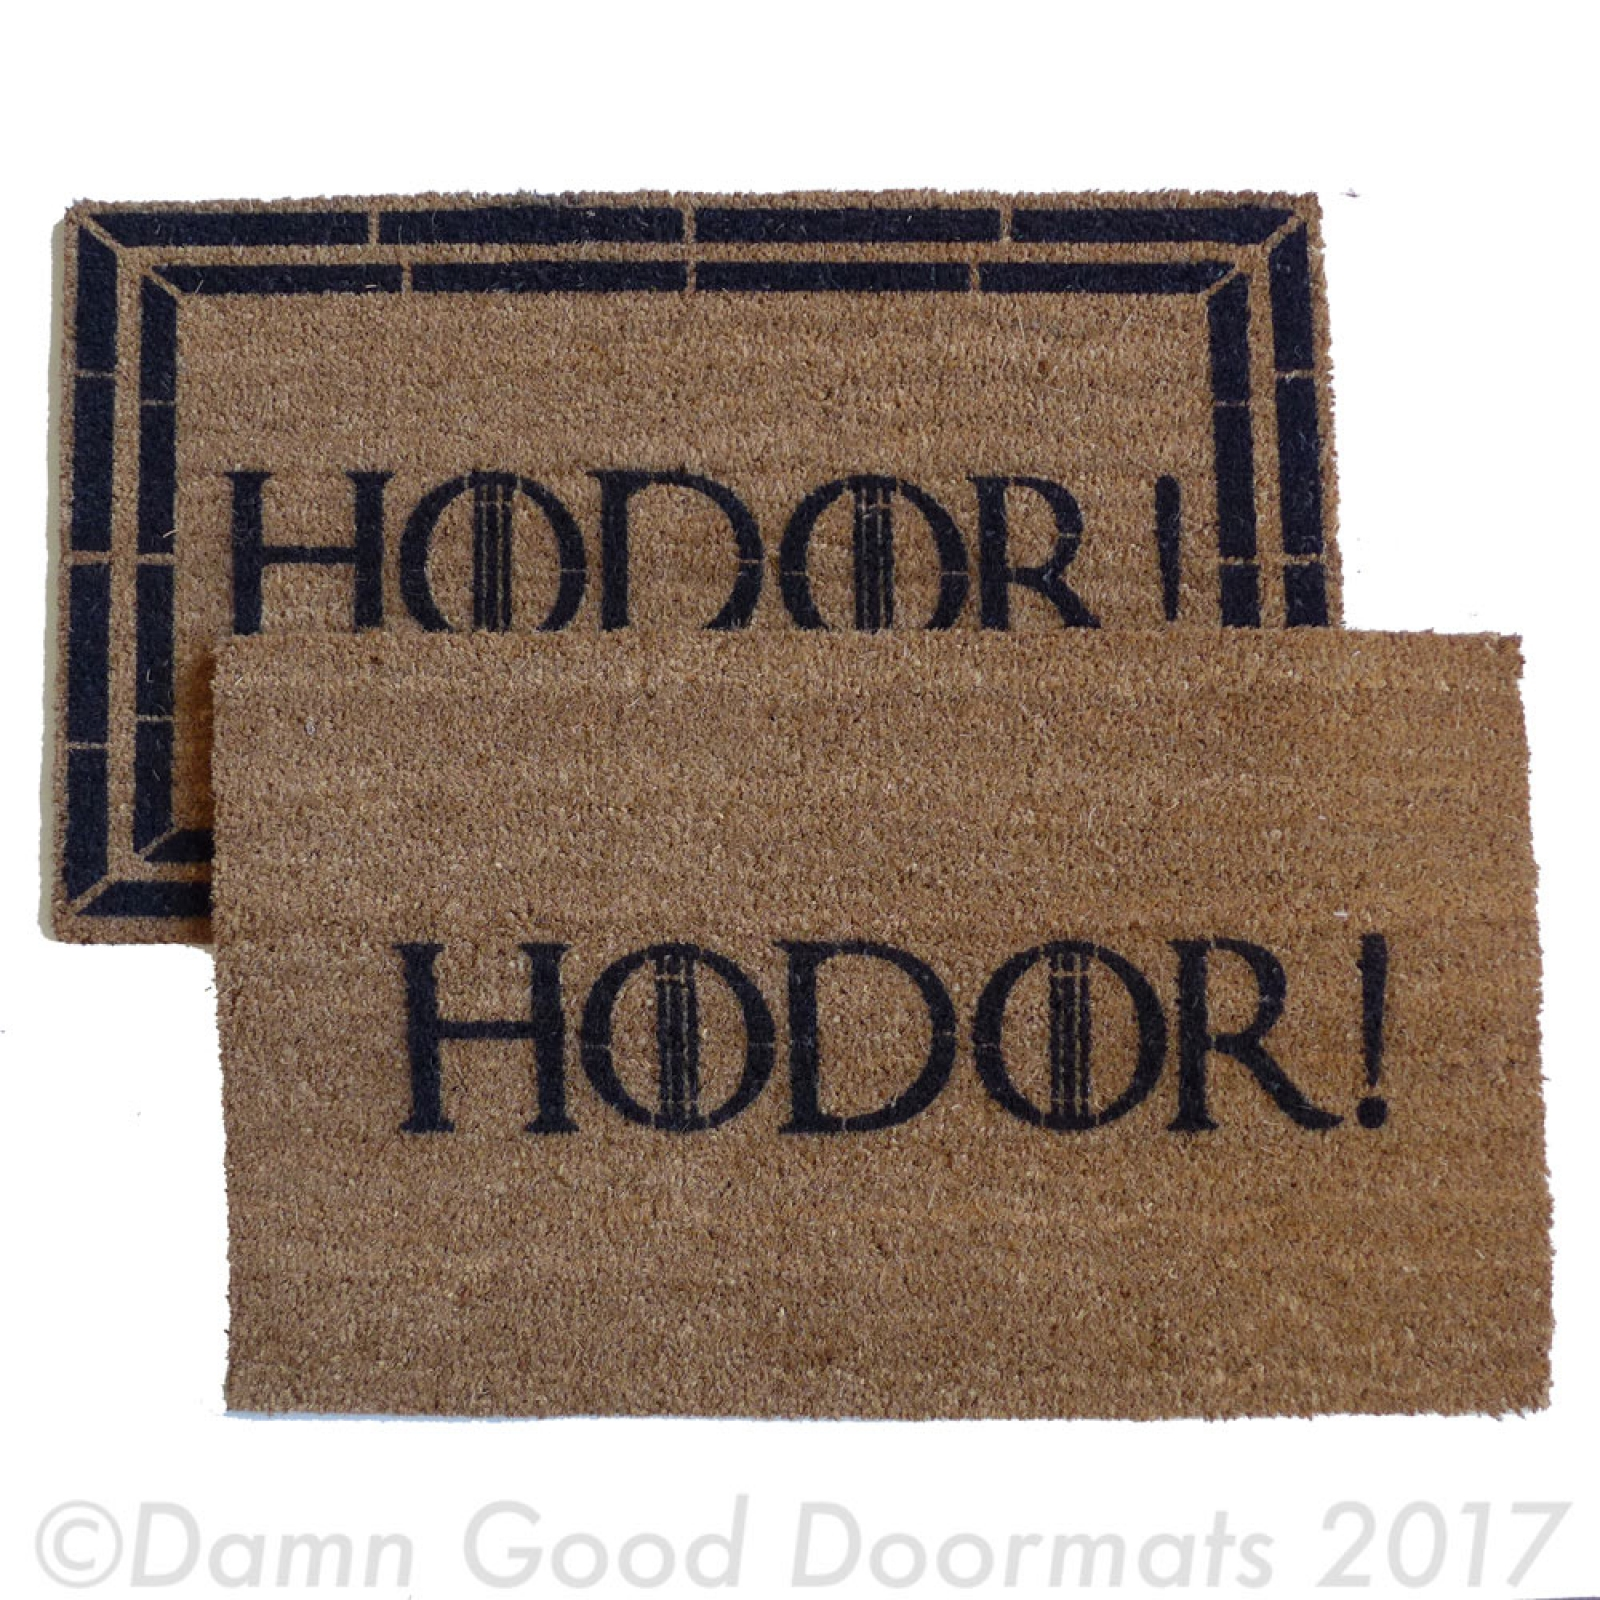 Hodor Game Of Thrones Doormat Damn Good Doormats